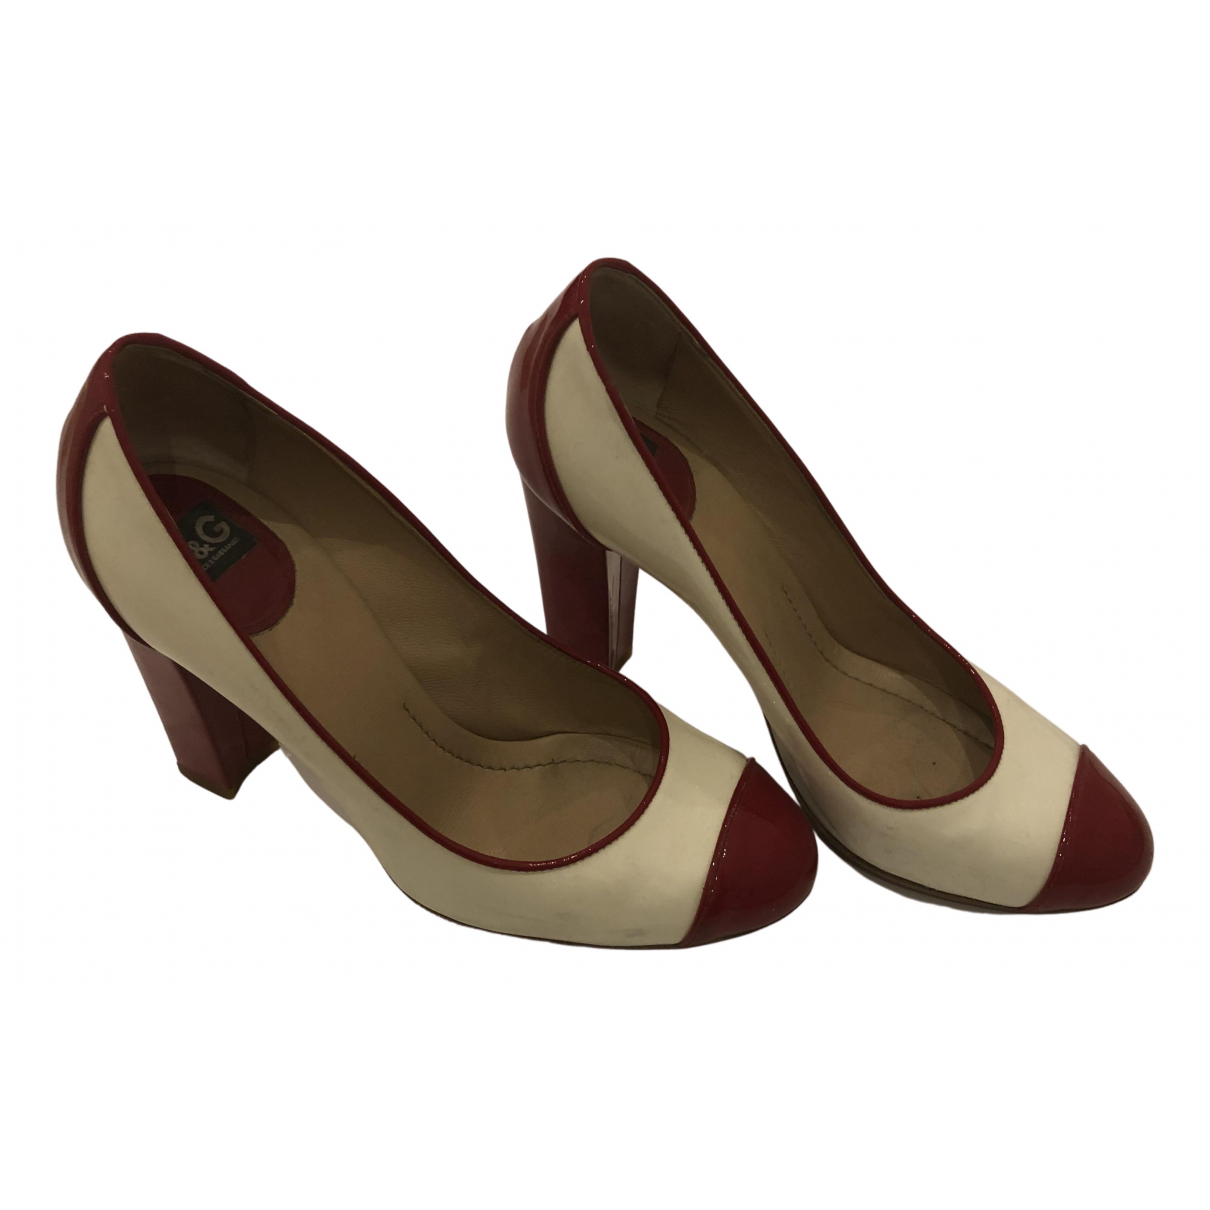 D&g N White Patent leather Heels for Women 39.5 EU